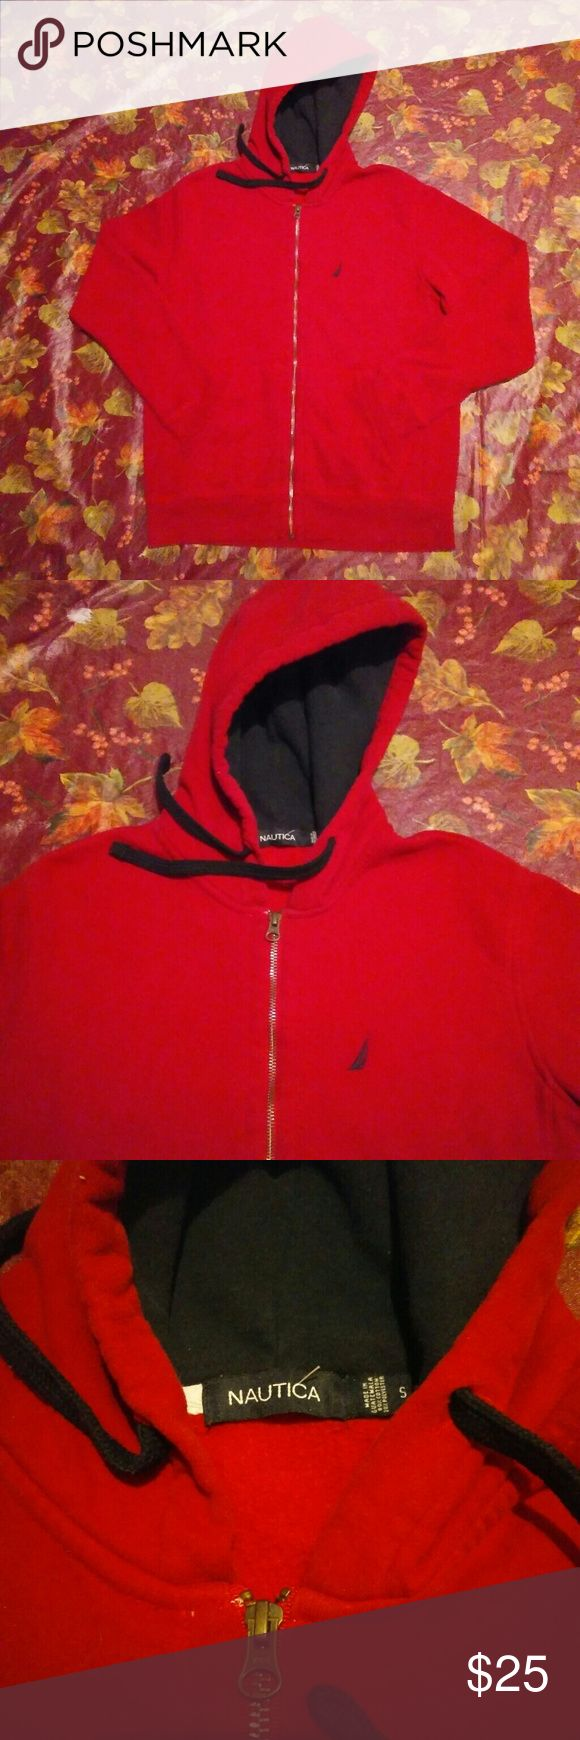 Nautica Small Red Zip Up Hoodie! This jacket is in great condition. Made by Nautica, a brand known for quality shirts and clothing. It is red and a size Small. Nautica Sweaters Zip Up